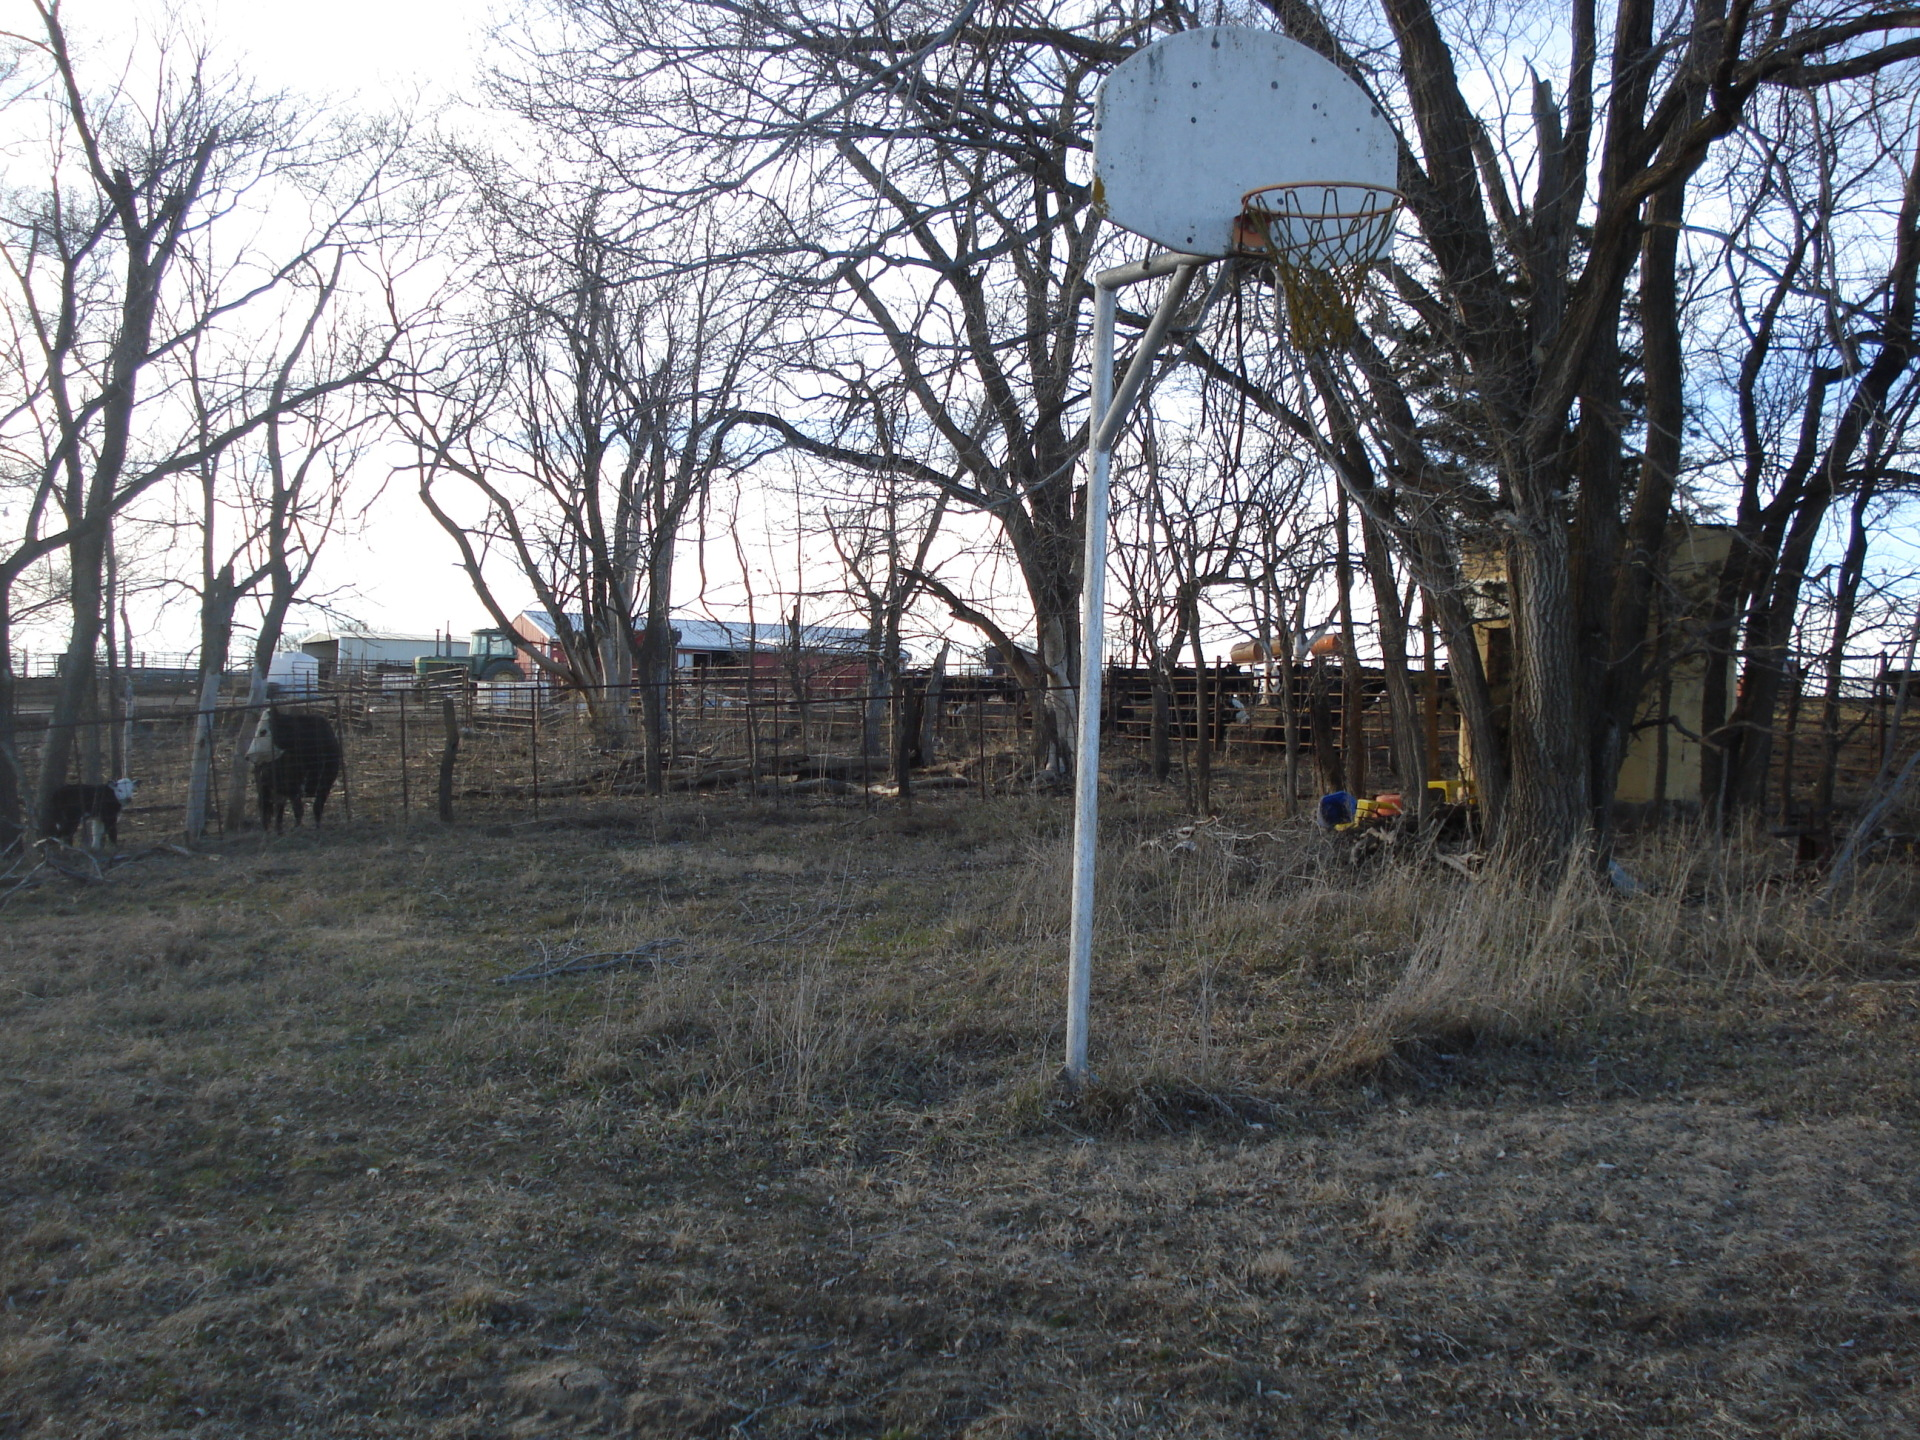 view of yard with basketball goal